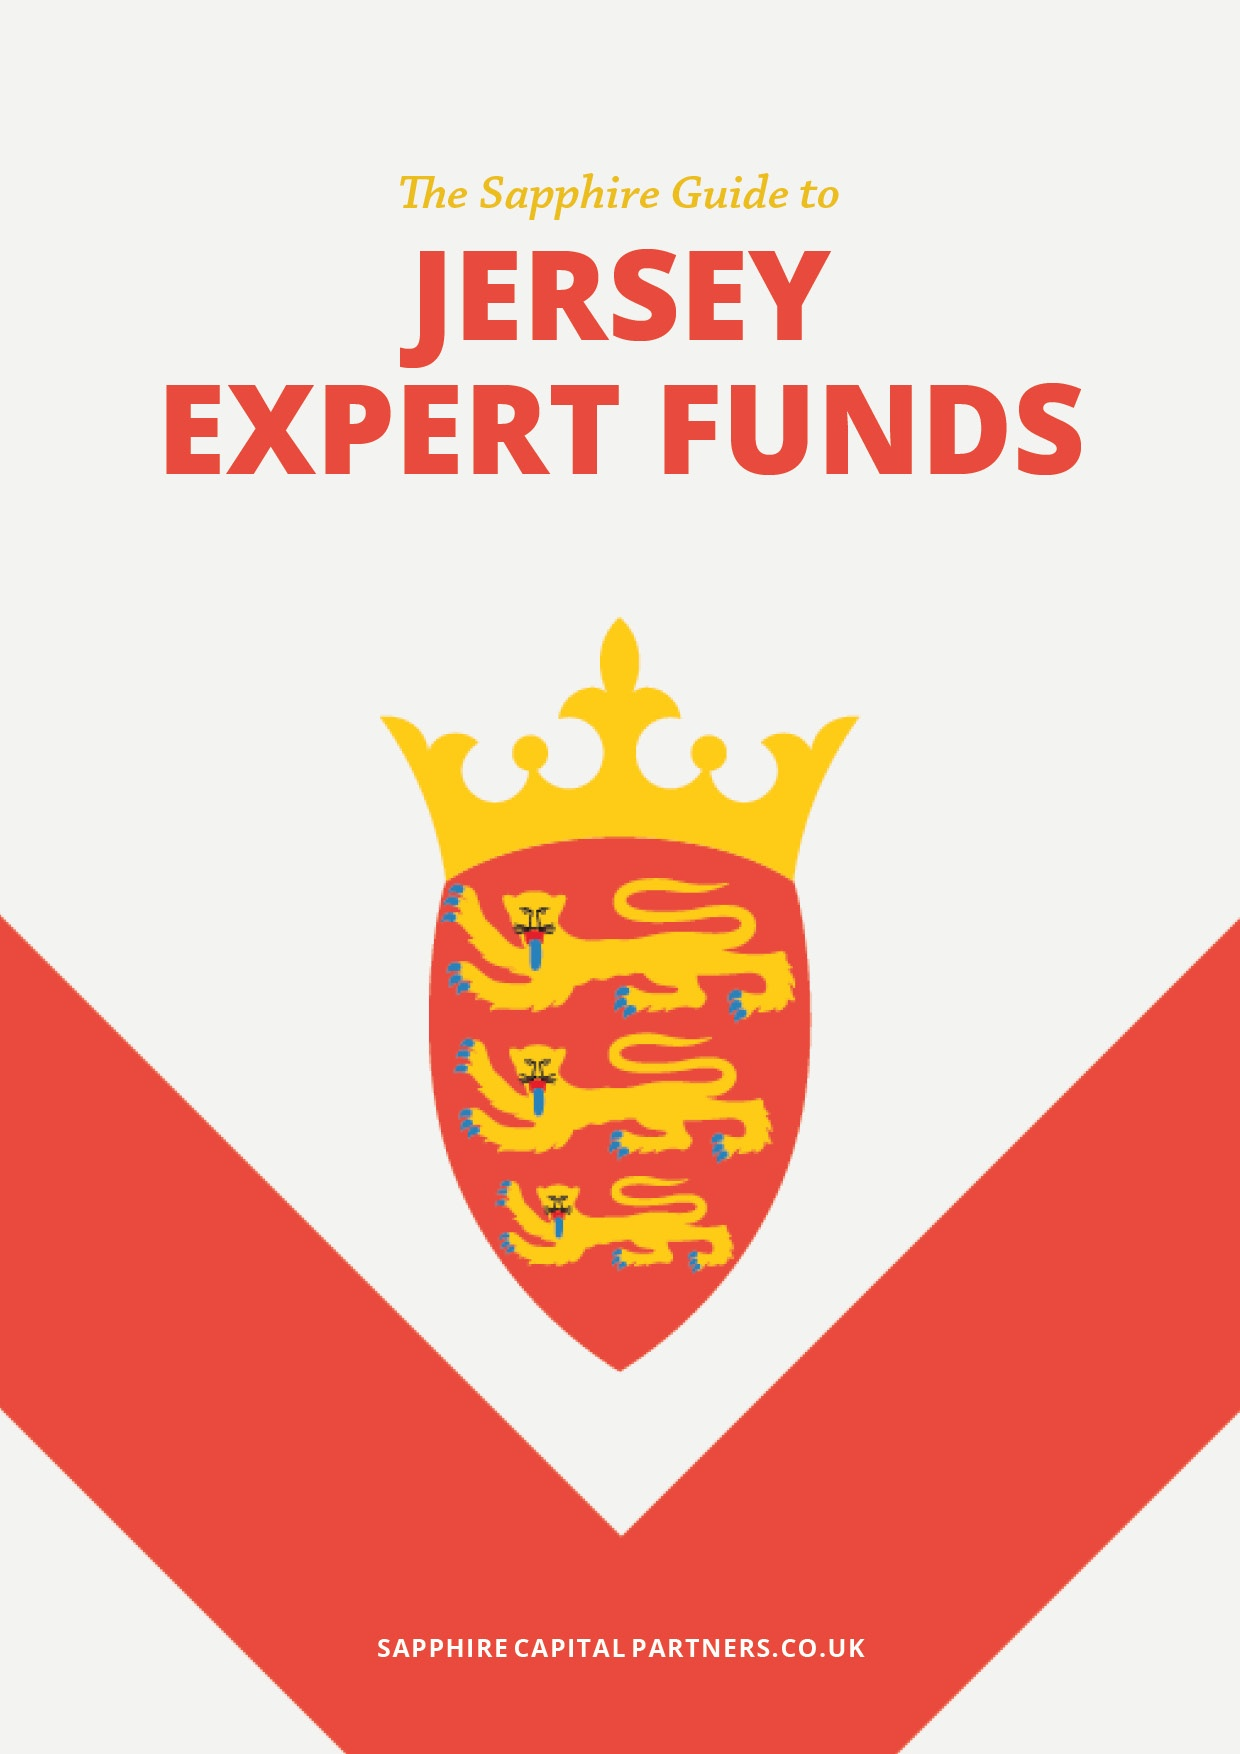 The Sapphire Guide to Jersey Expert Funds